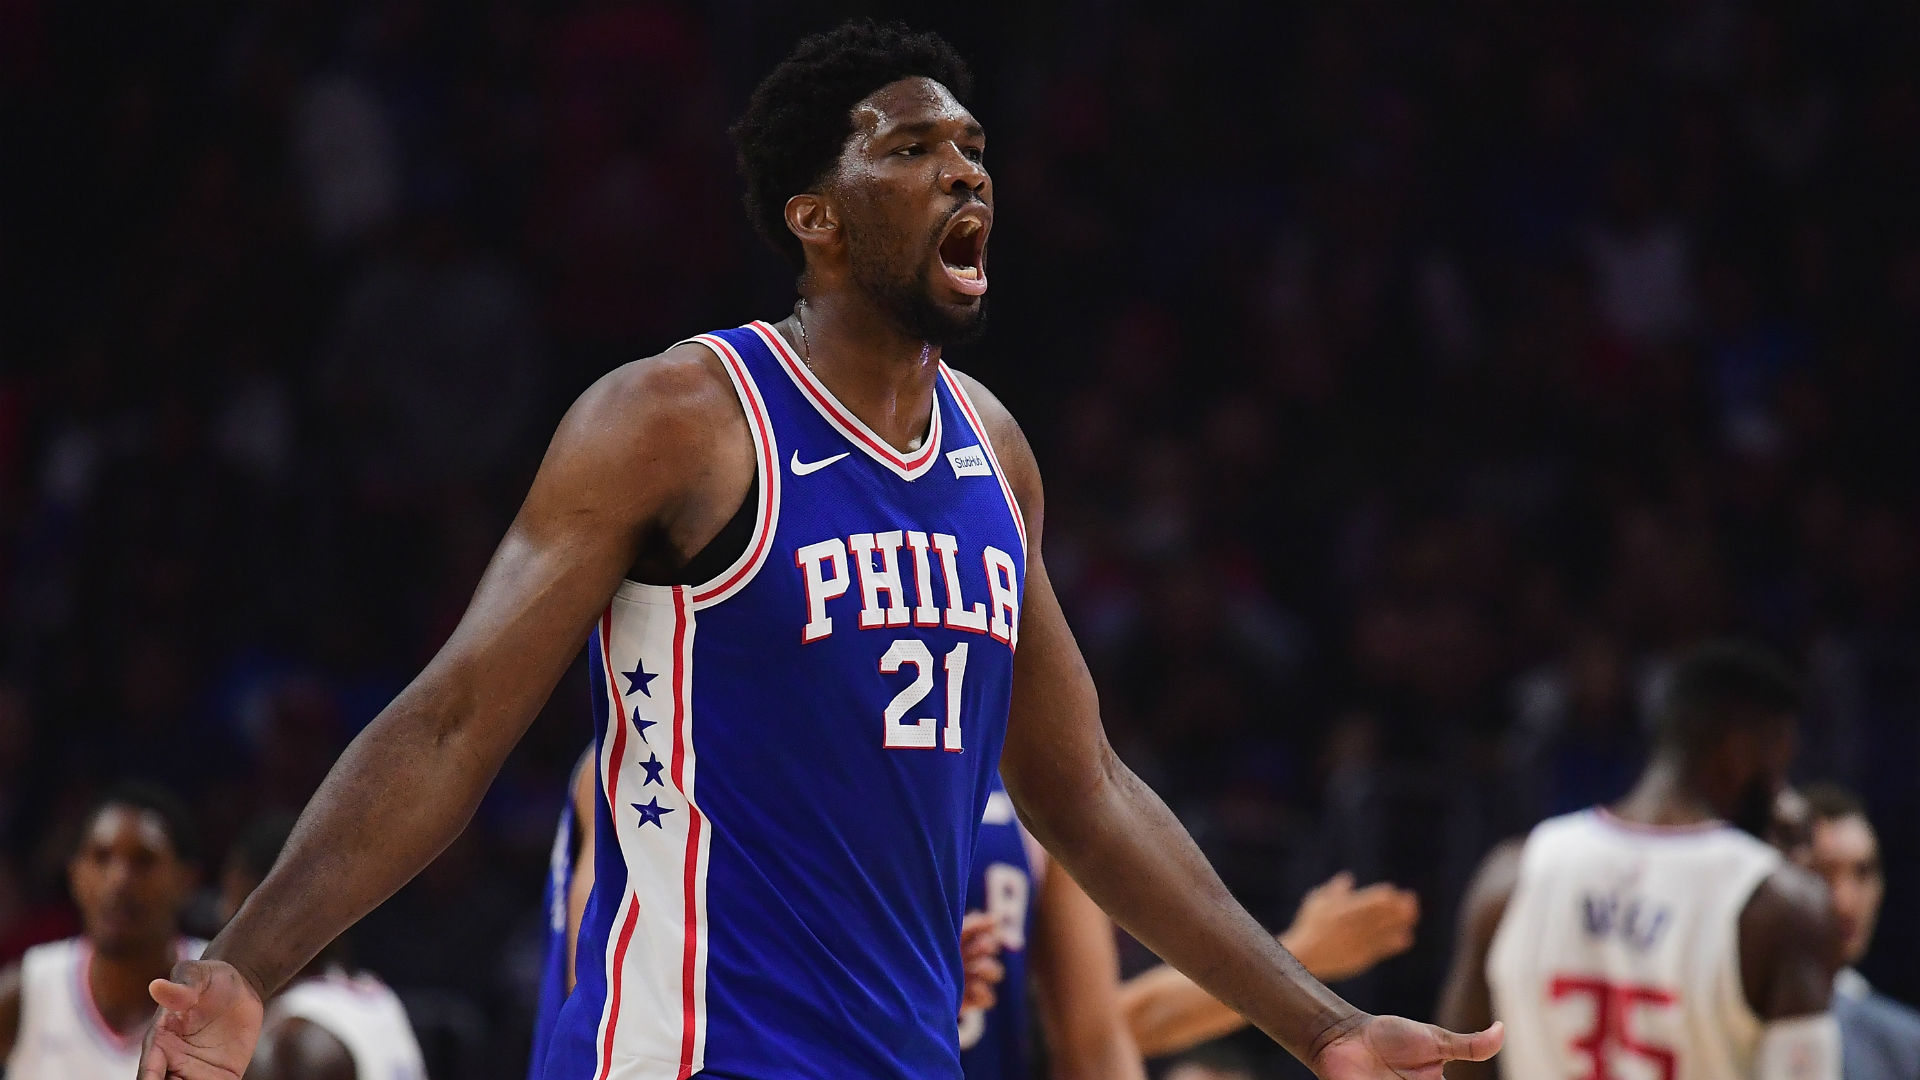 Sixers' Joel Embiid is becoming the complete package, and that's terrifying